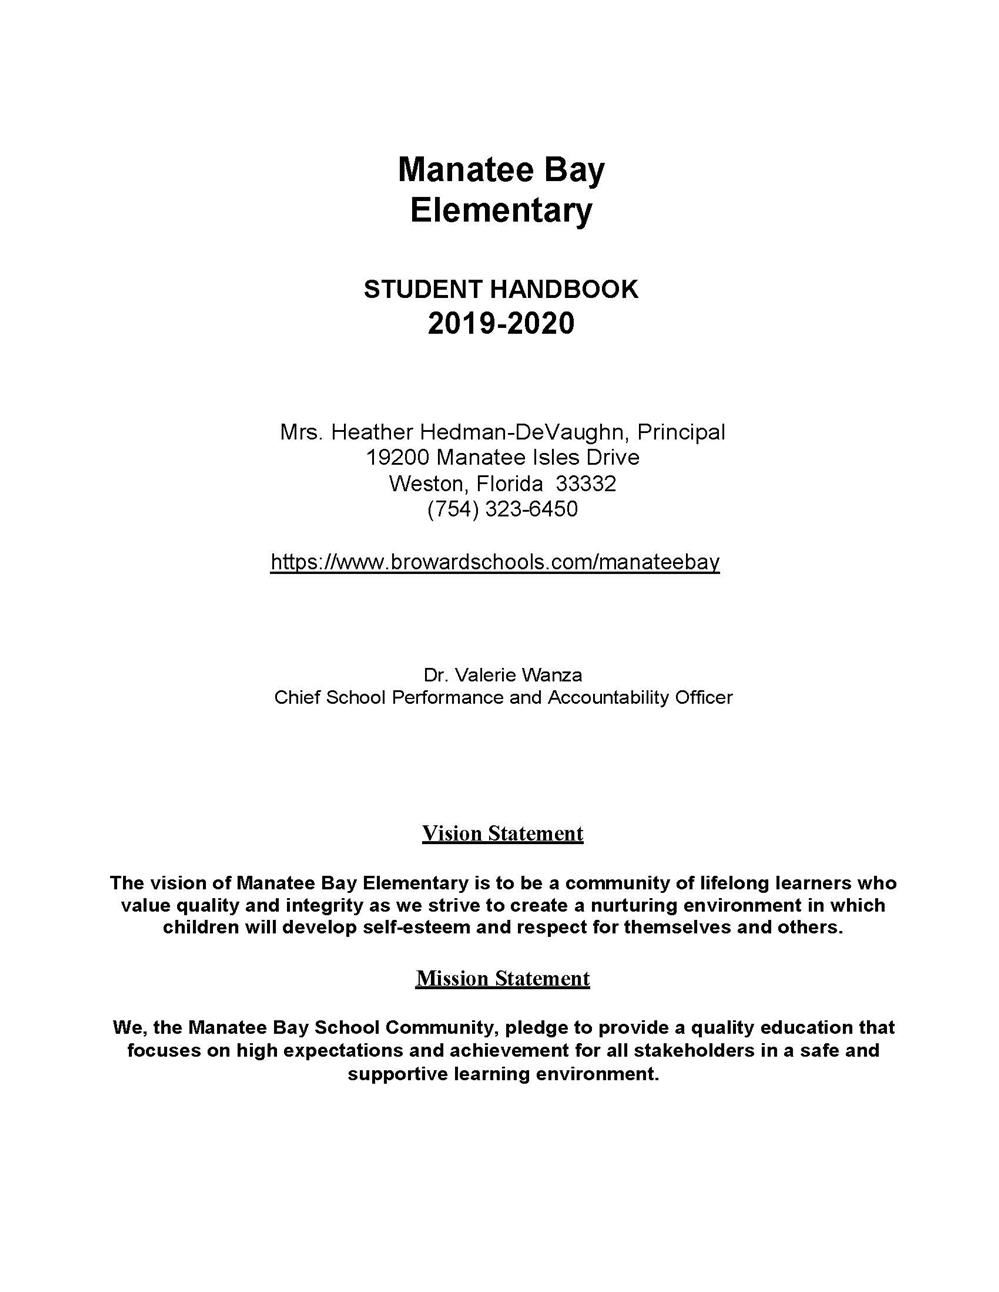 All you need to know about Manatee Bay is in our Student Handbook 2019-2020. Take a few minutes to read it!